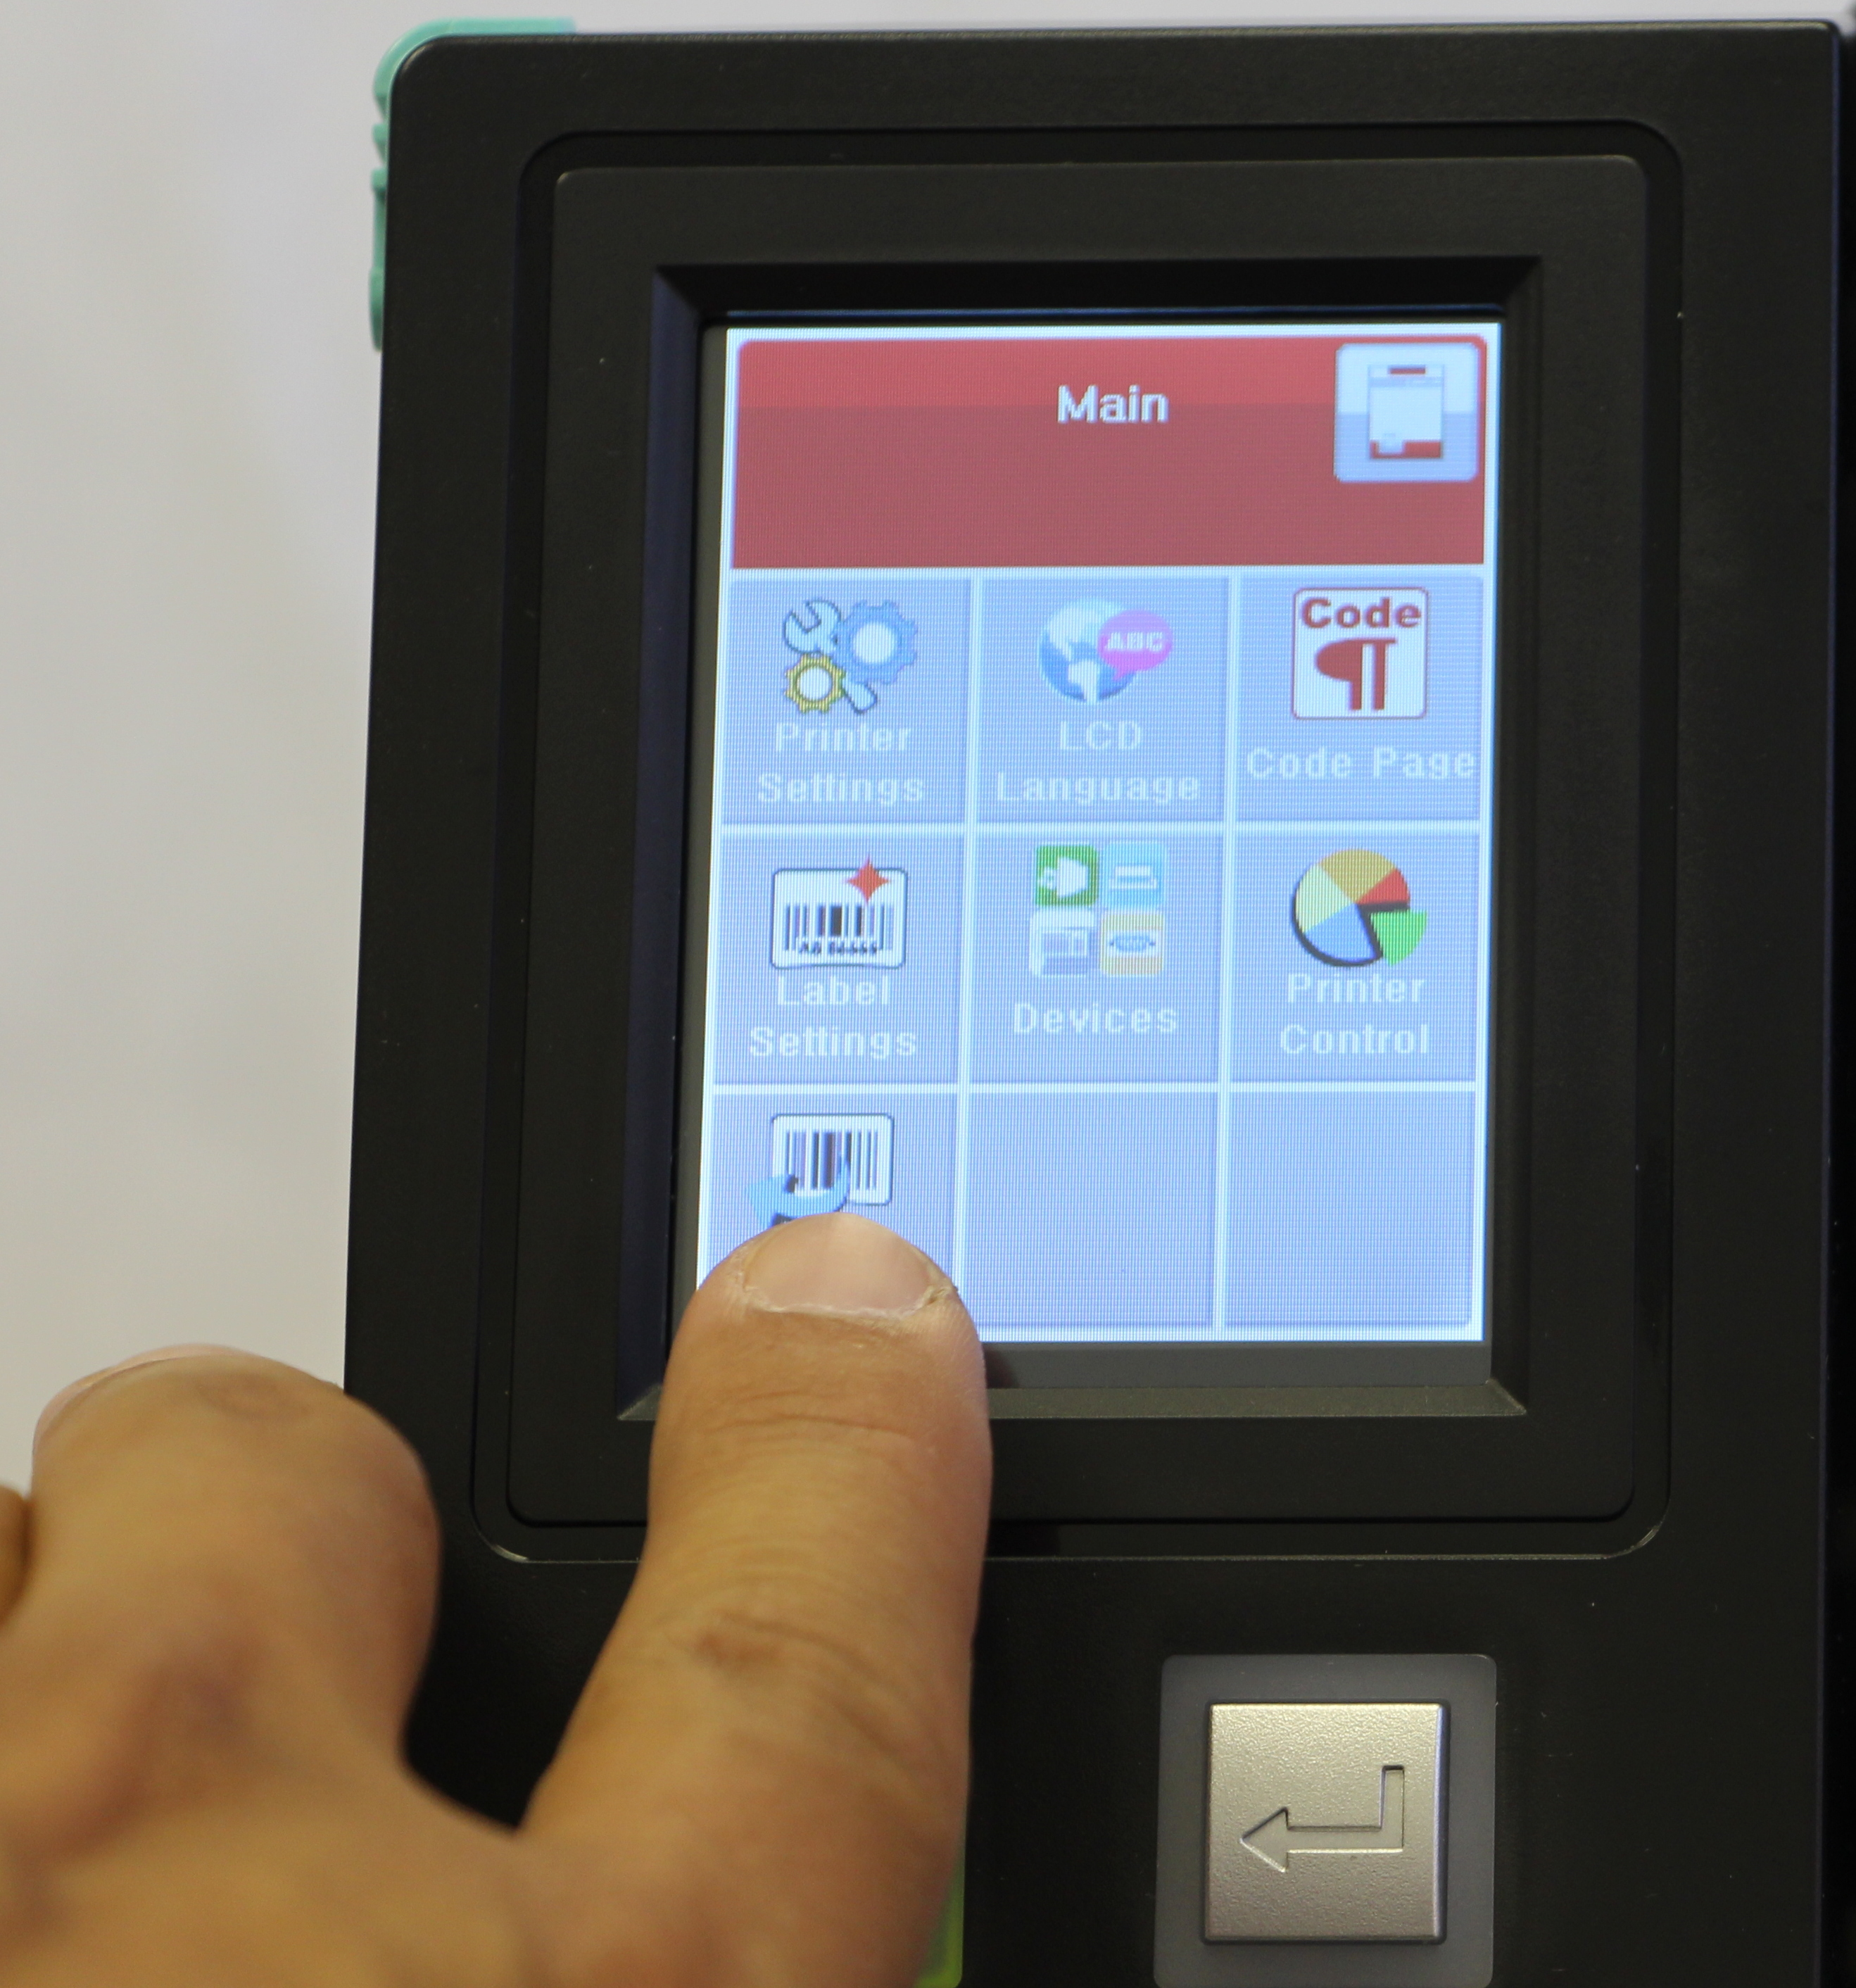 Large color touch screen LCD for EASY configuration